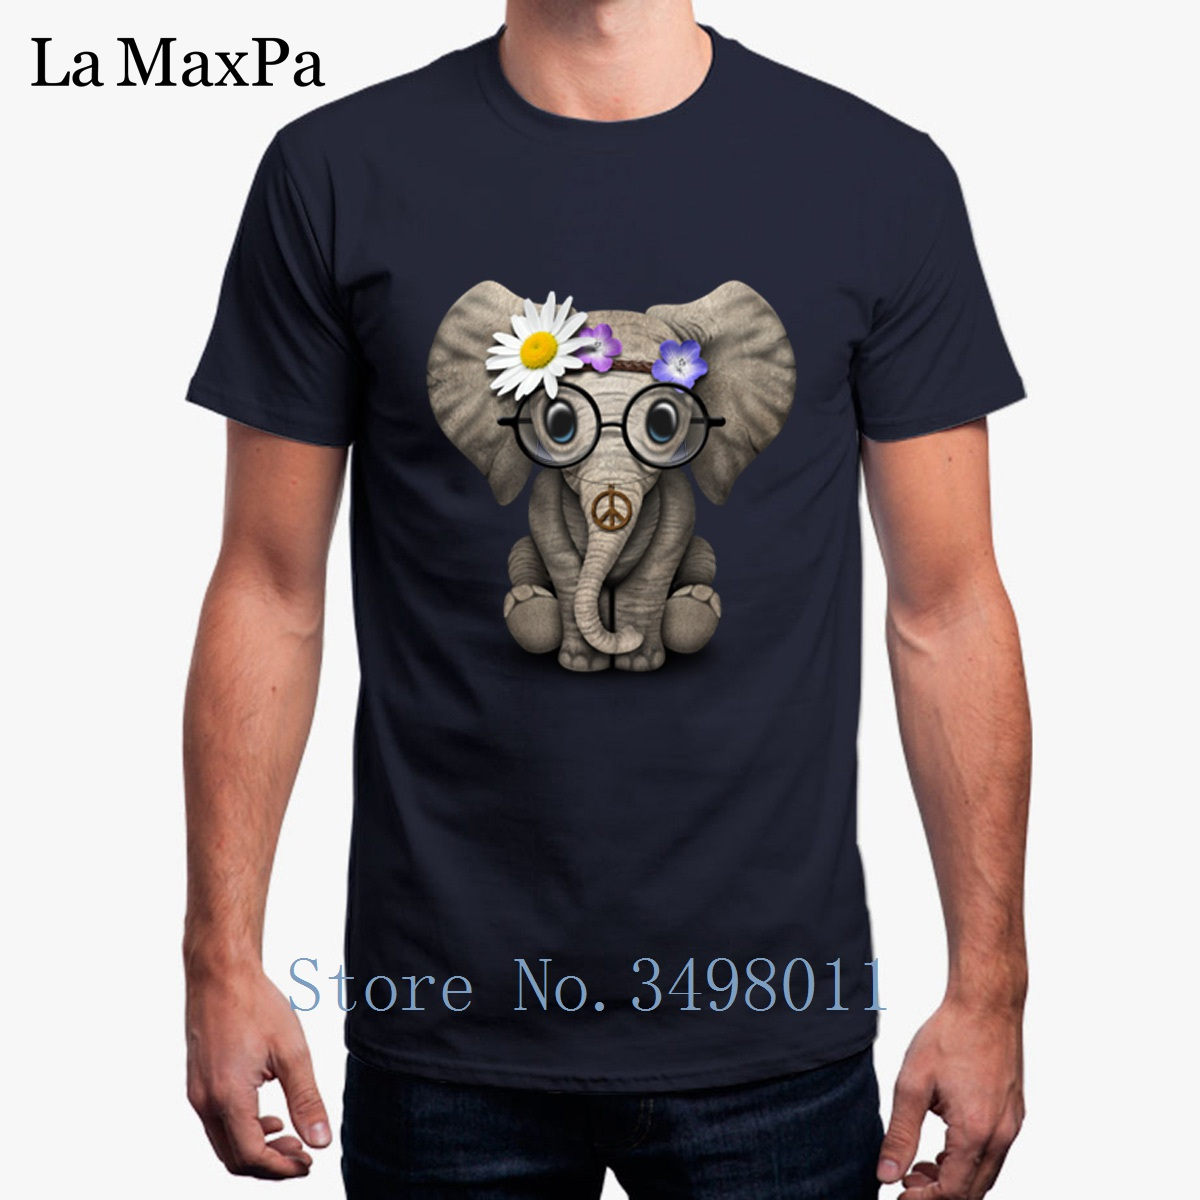 Printed Cute Baby Elephant Hippie T-Shirt For Men Fitness 100% Cotton Tee Shirt Costume Plus Size Men T Shirt Short Sleeves